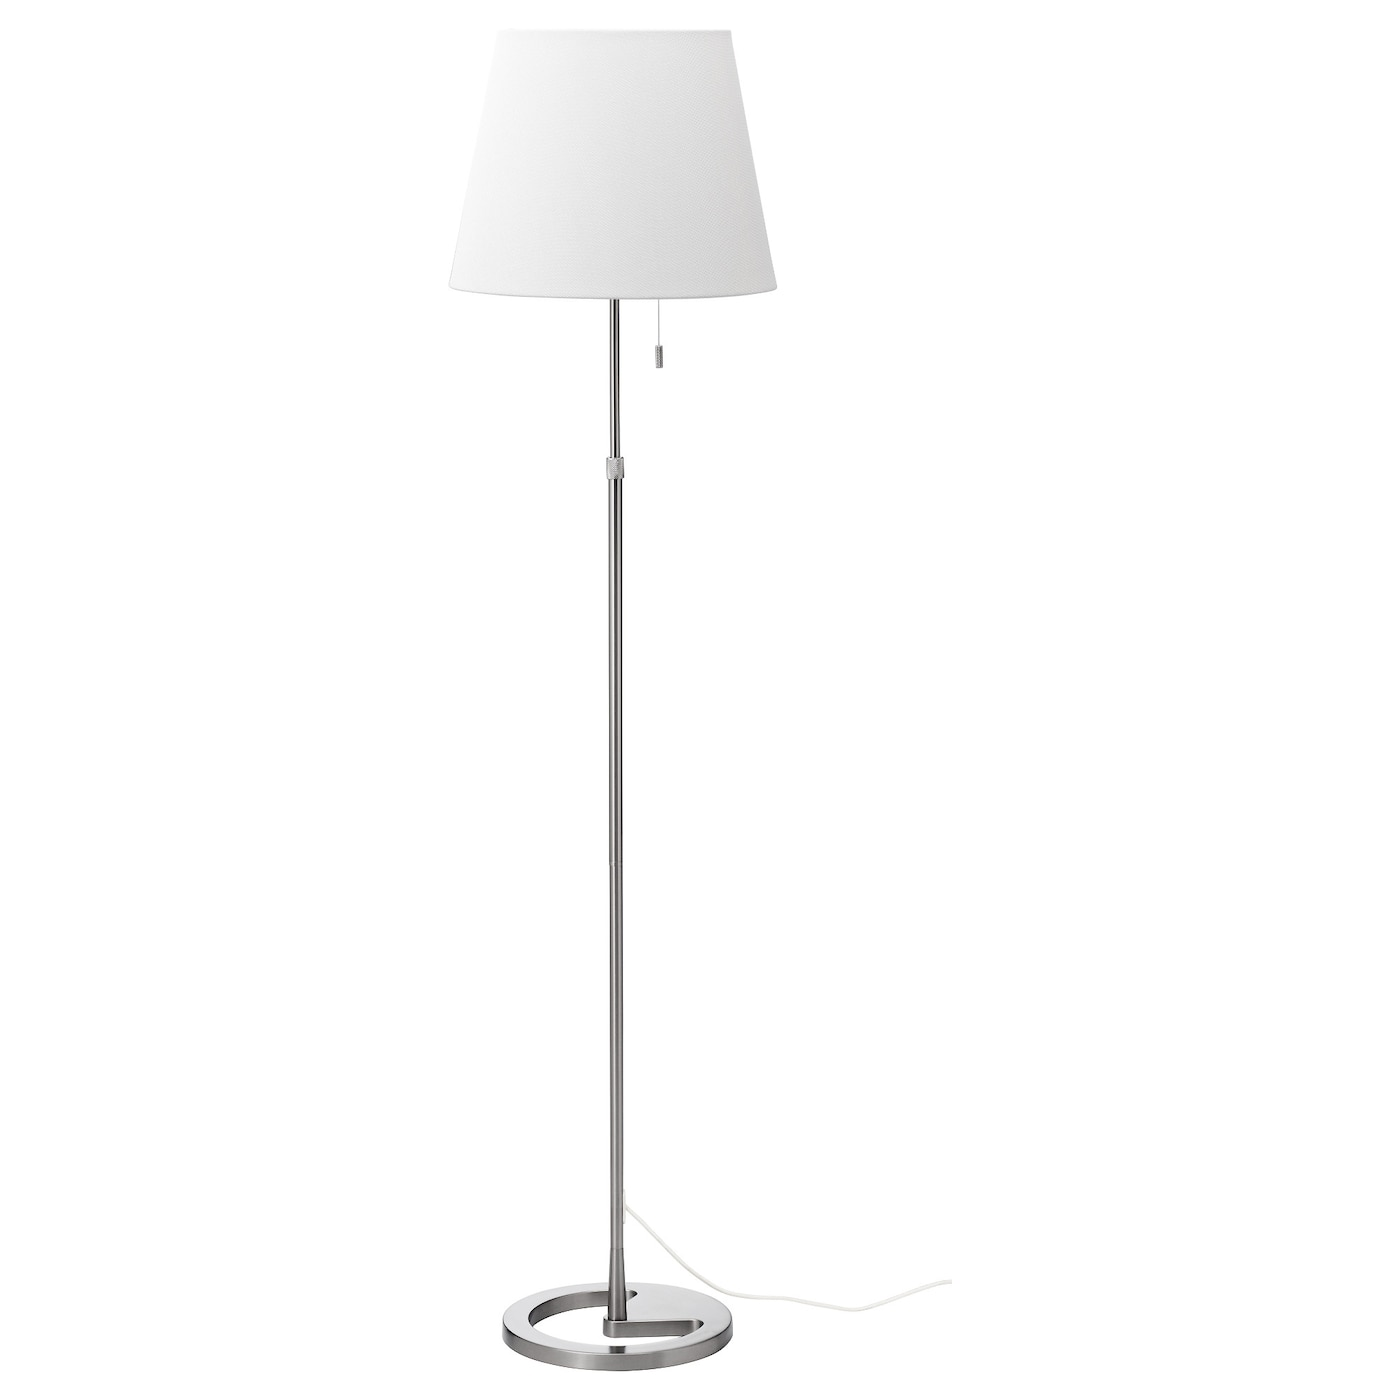 Ikea Malm Bett Lattenrost Rutscht ~ IKEA NYFORS floor lamp The height is adjustable to suit your lighting